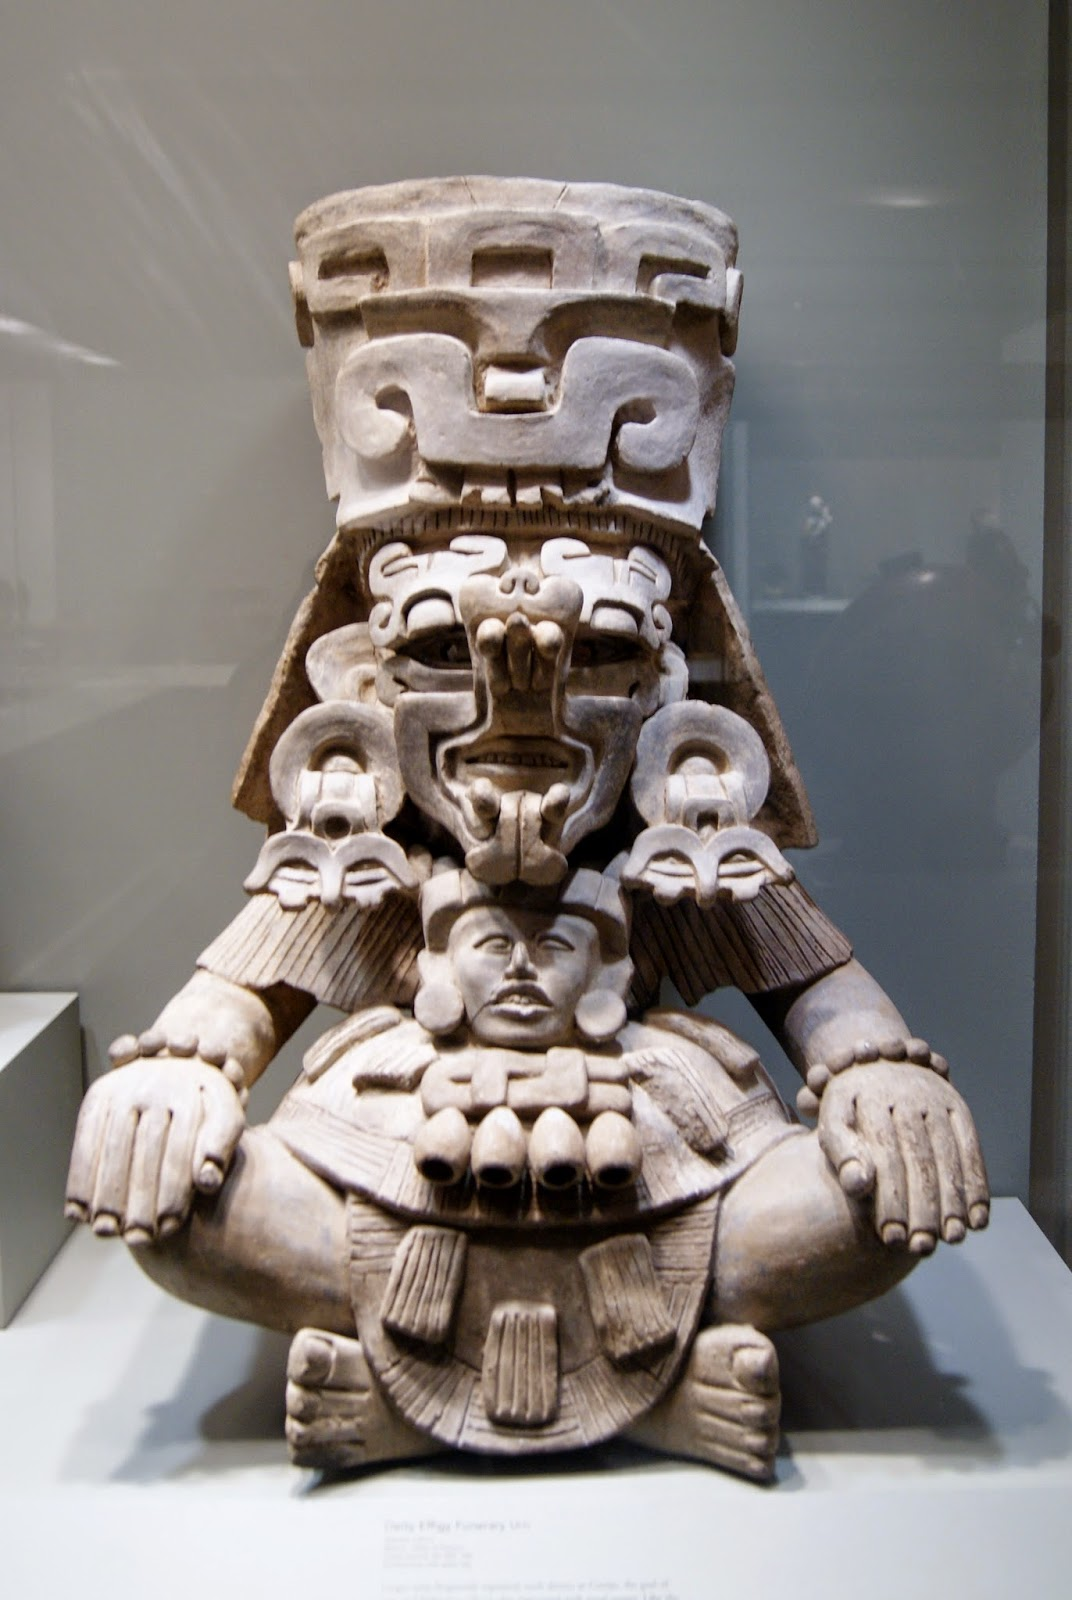 Gardiner Museum of Ceramic Art in Toronto, Artmatters, Culture, Ontario, Canada, MelaniePs, The Purple Scarf, Camp Fires, Exhibit, Exhibition, Mexico, Deity Effigy, funerary Urn